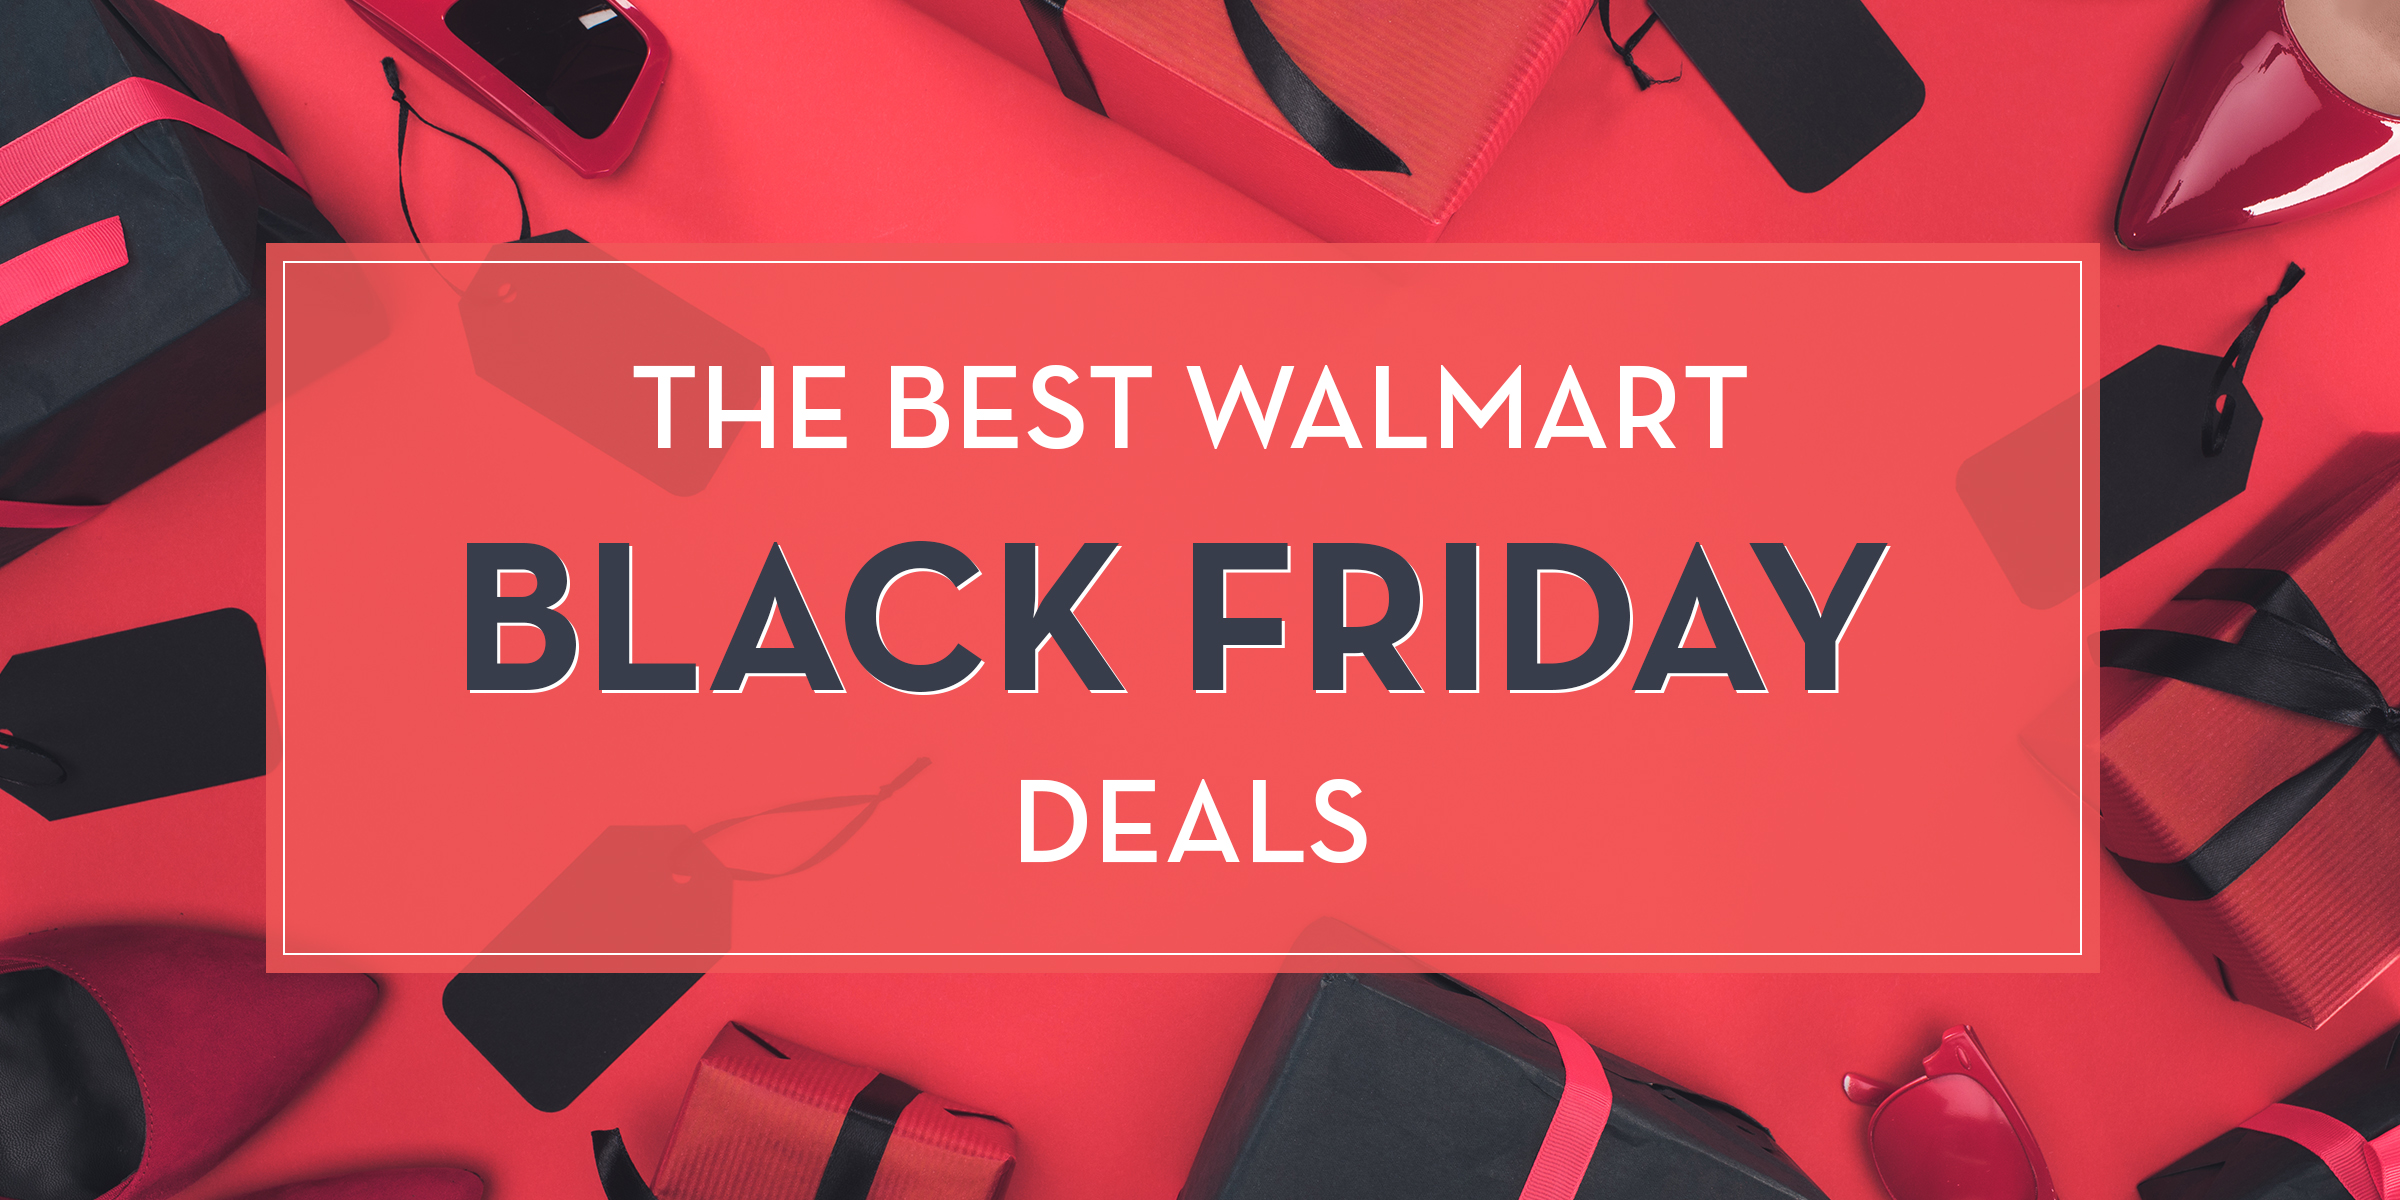 2019 Walmart Black Friday Deals